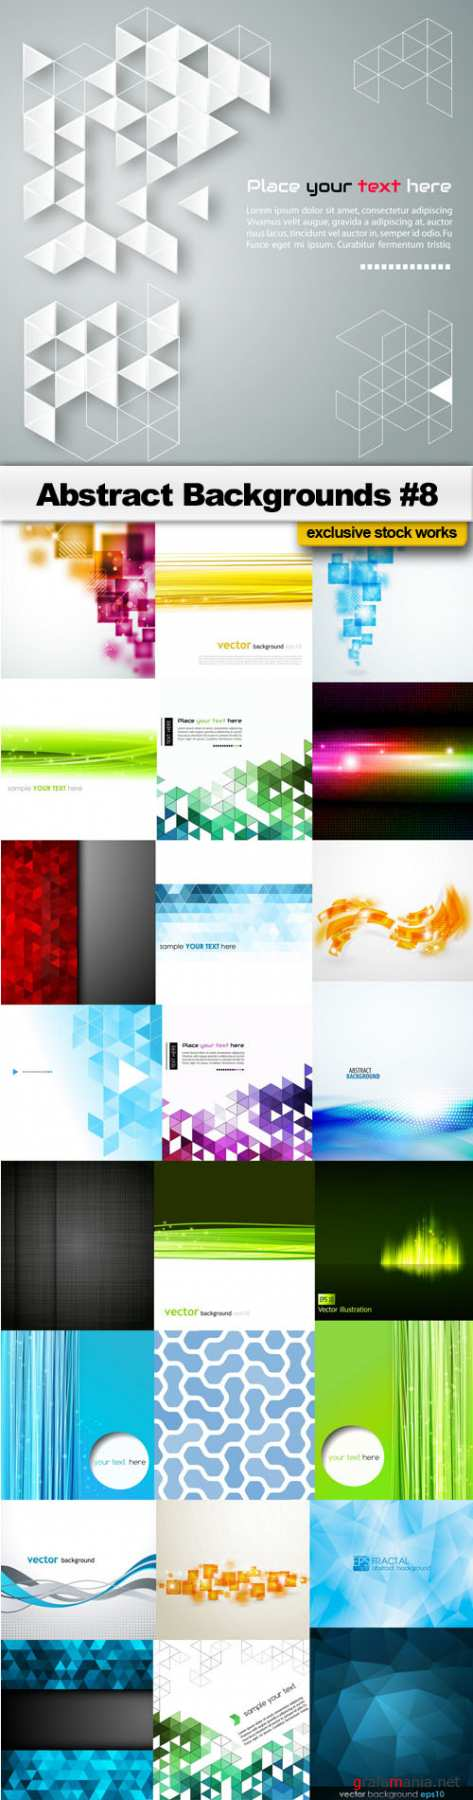 Abstract Backgrounds #8 - 25 EPS